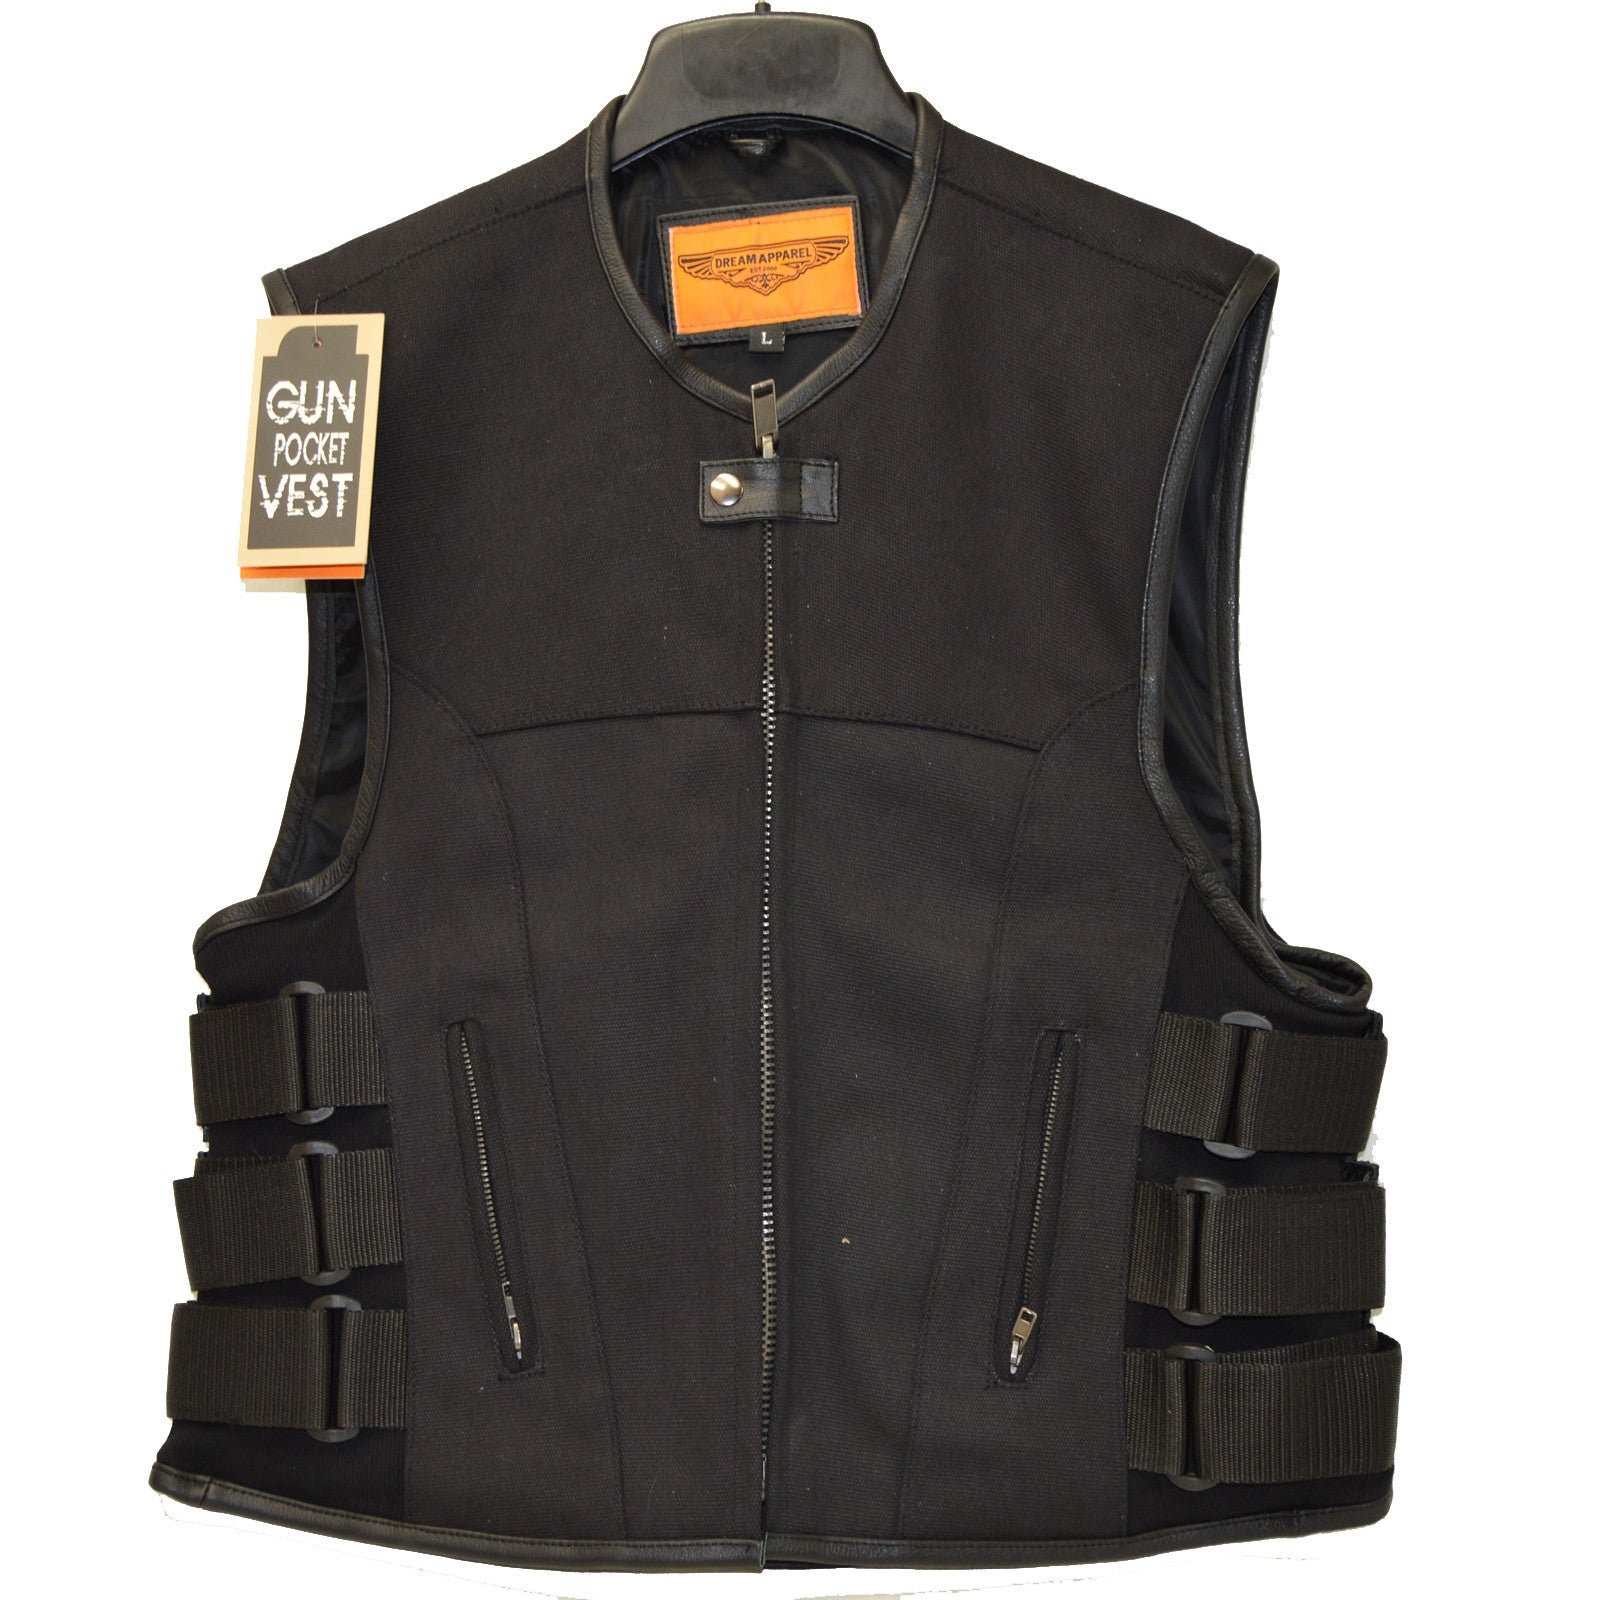 BIKERS UPDATED SWAT TEAM STYLE CANVAS VEST W/ GUN POCKETS BLACK